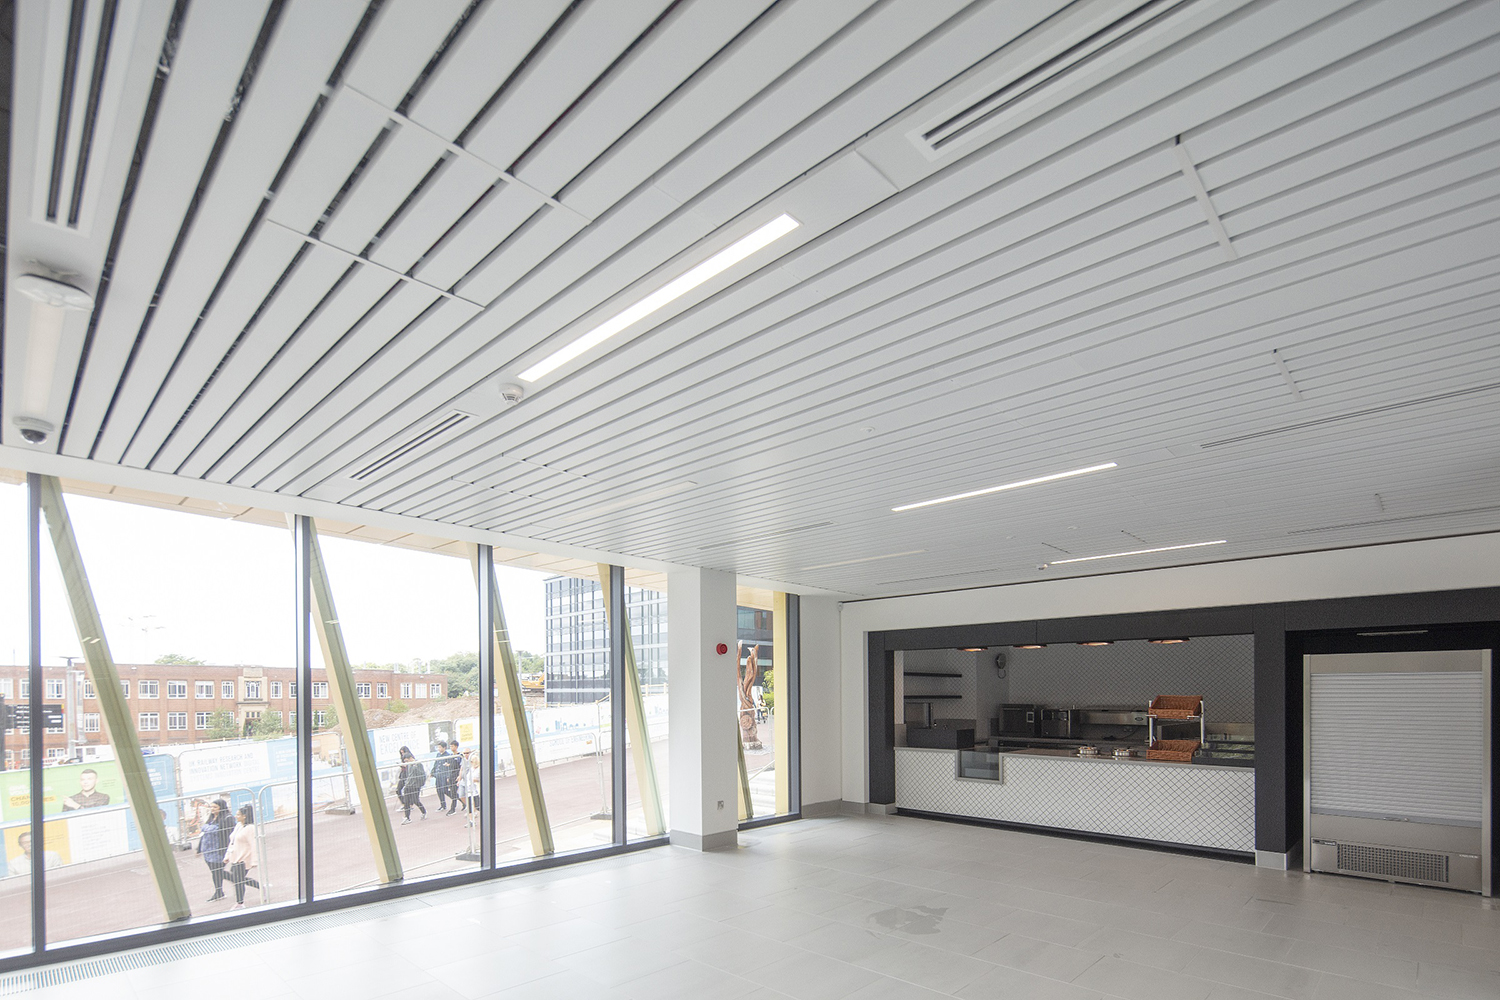 Aluminium Floor Access Covers were supplied for Collaborative Teaching Lab